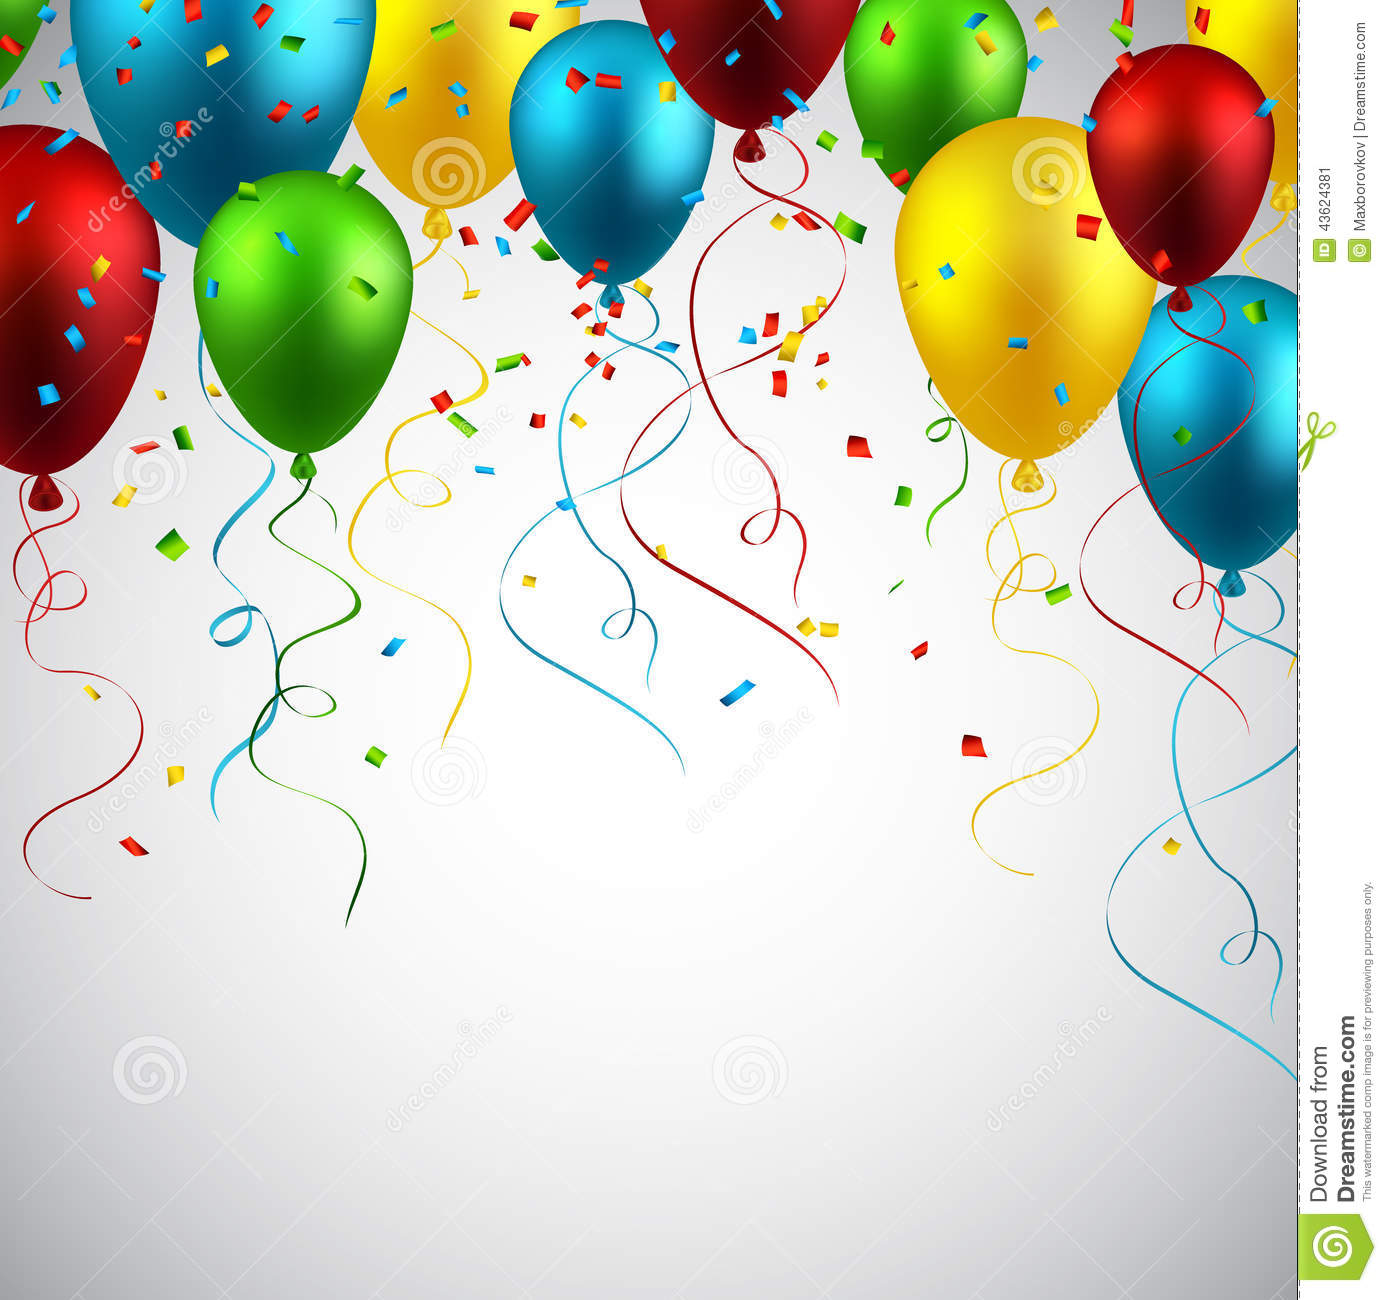 Celebrate Colorful Background With Balloons. Stock Vector